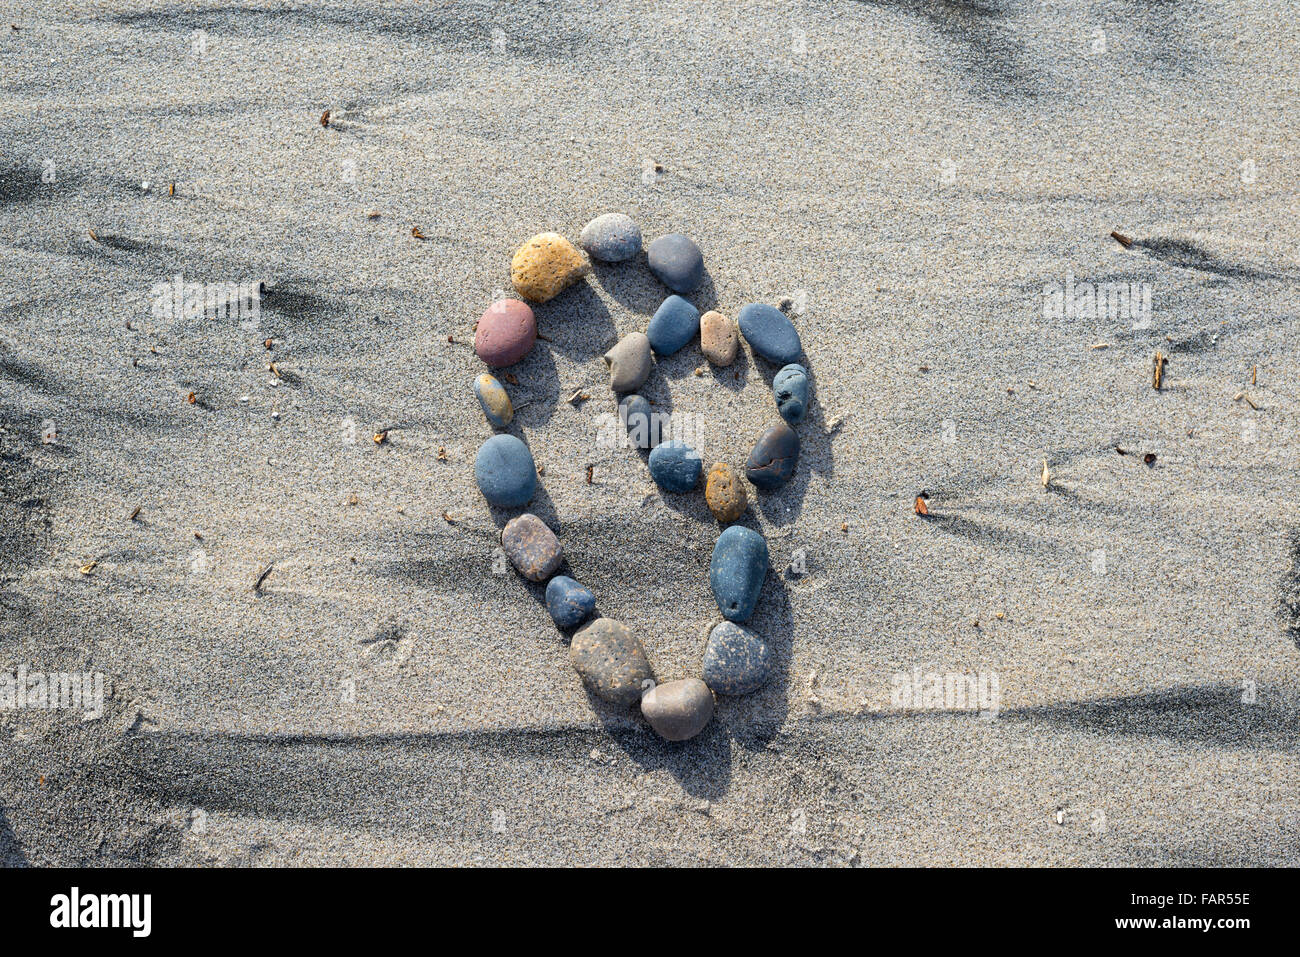 Heart shape formed by stones on sand. - Stock Image